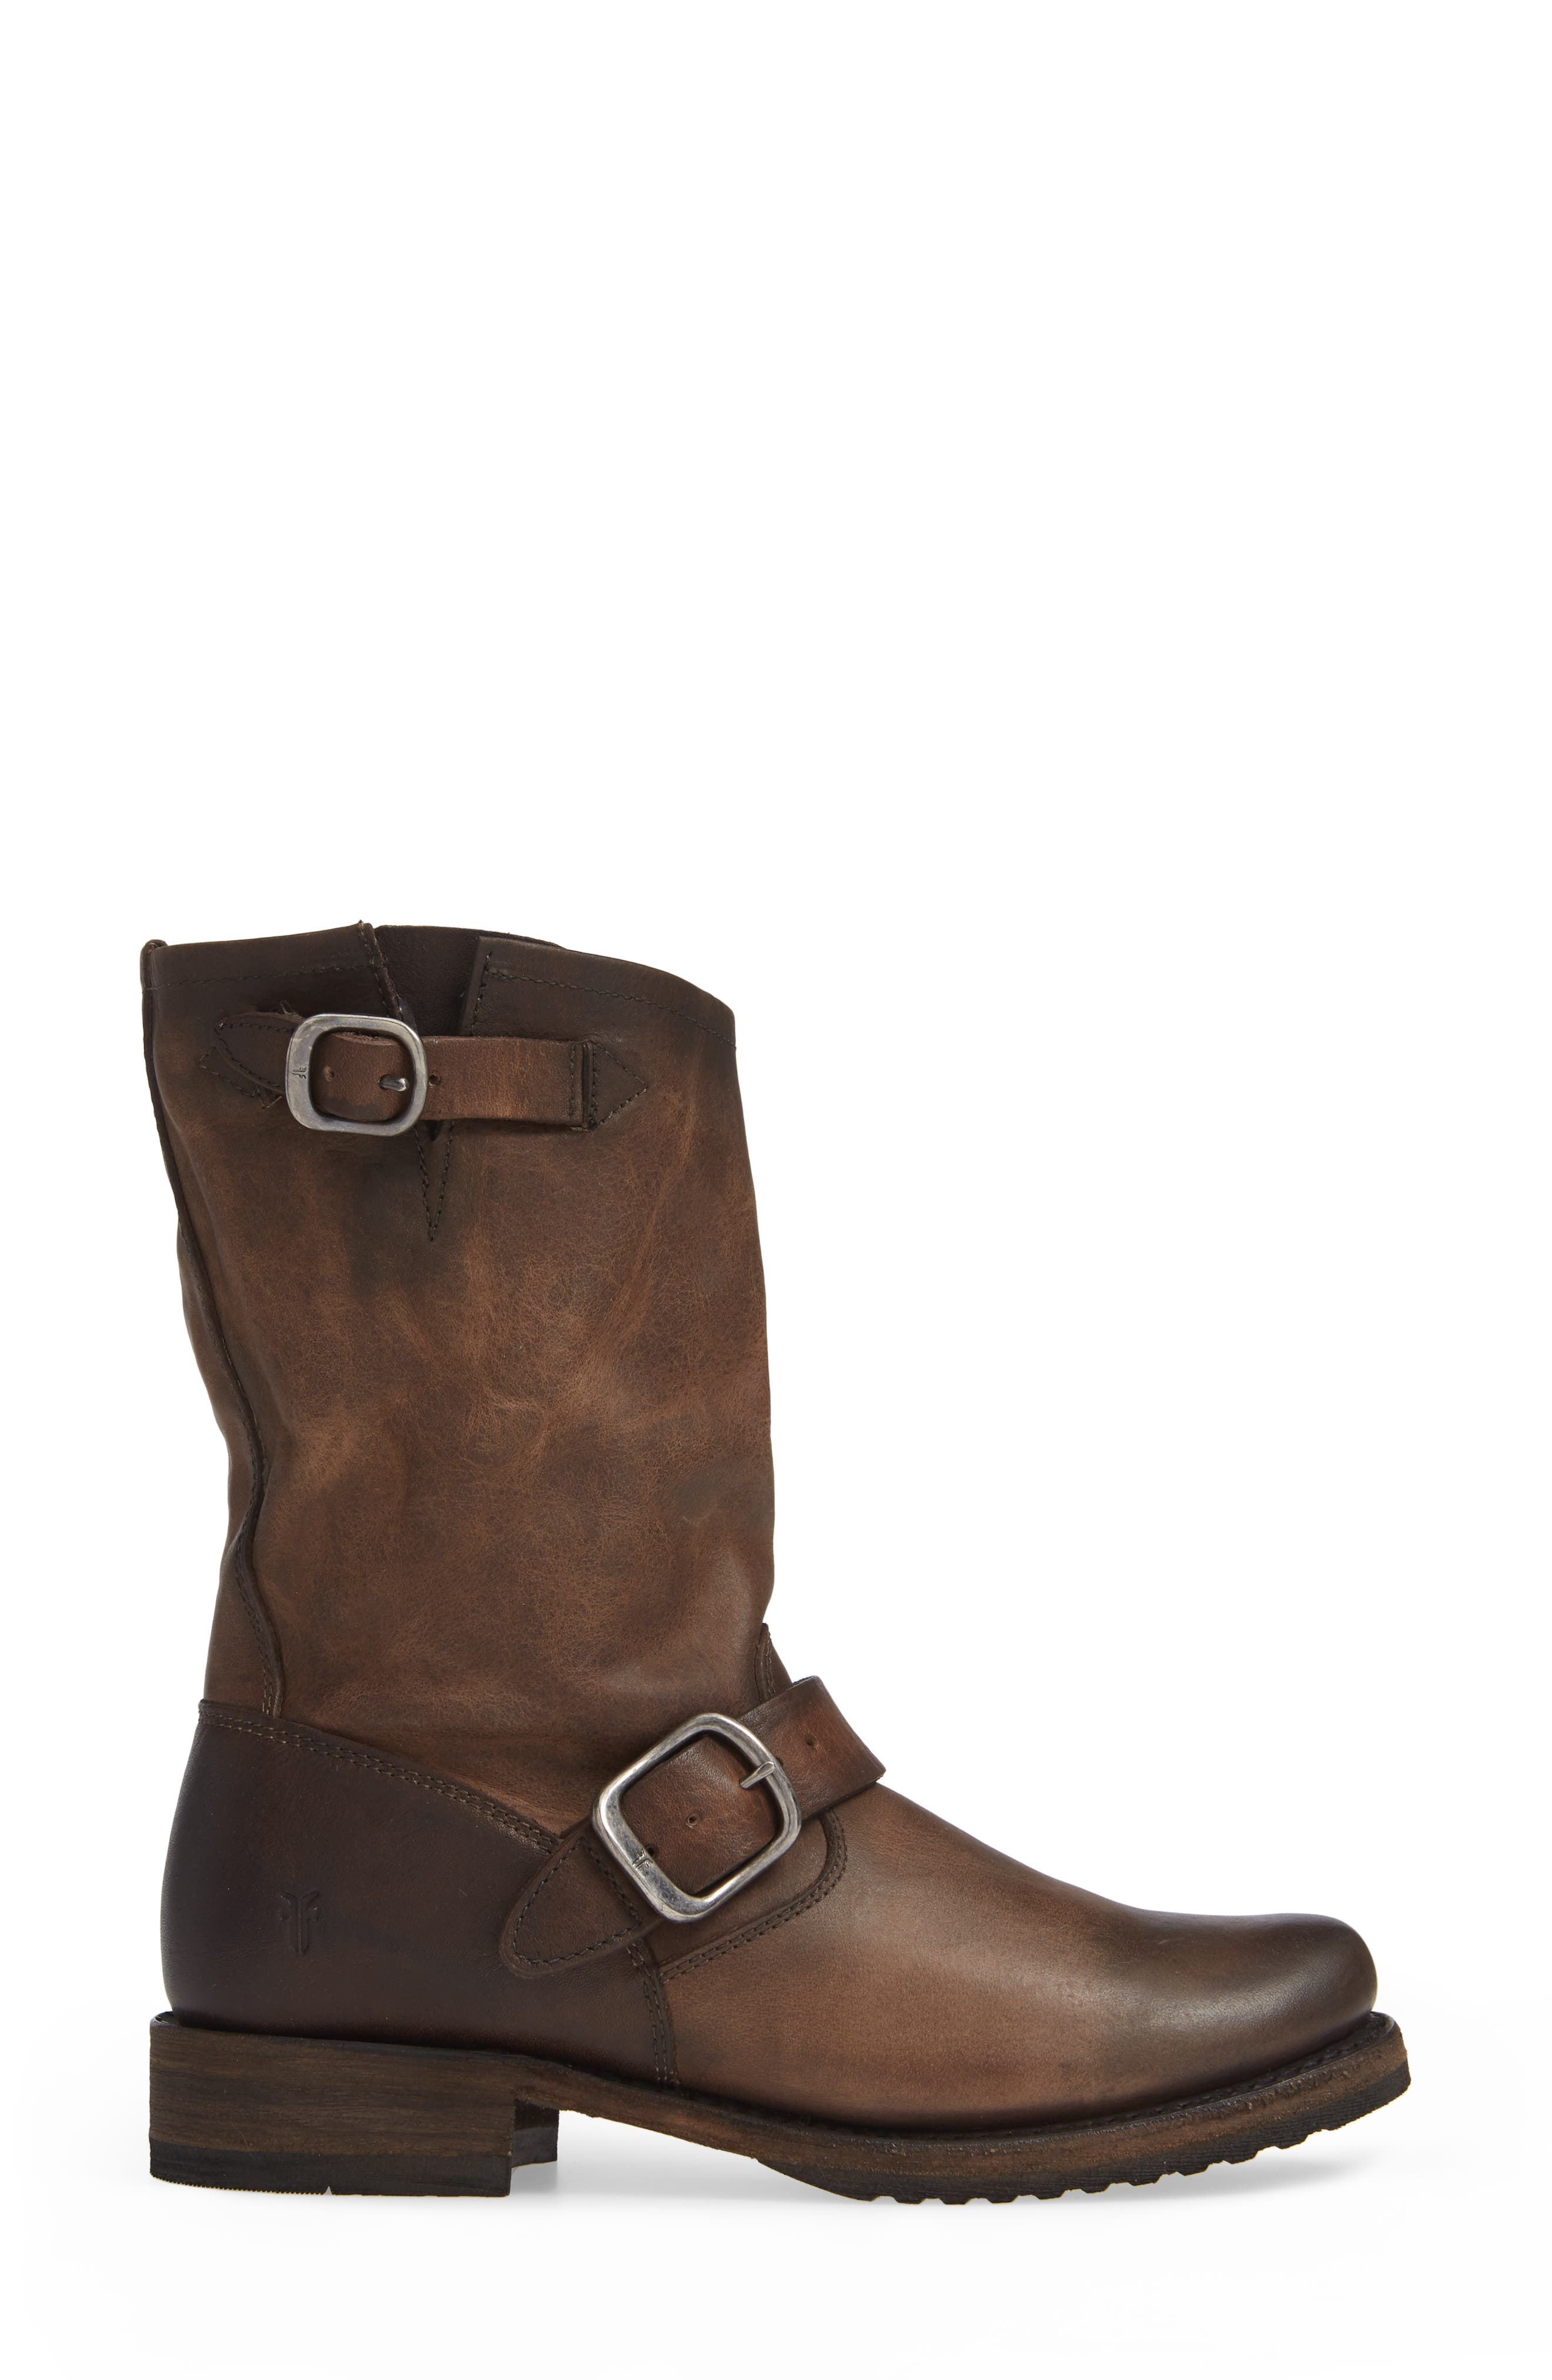 'Veronica' Short Boot,                             Alternate thumbnail 3, color,                             BROWN LEATHER